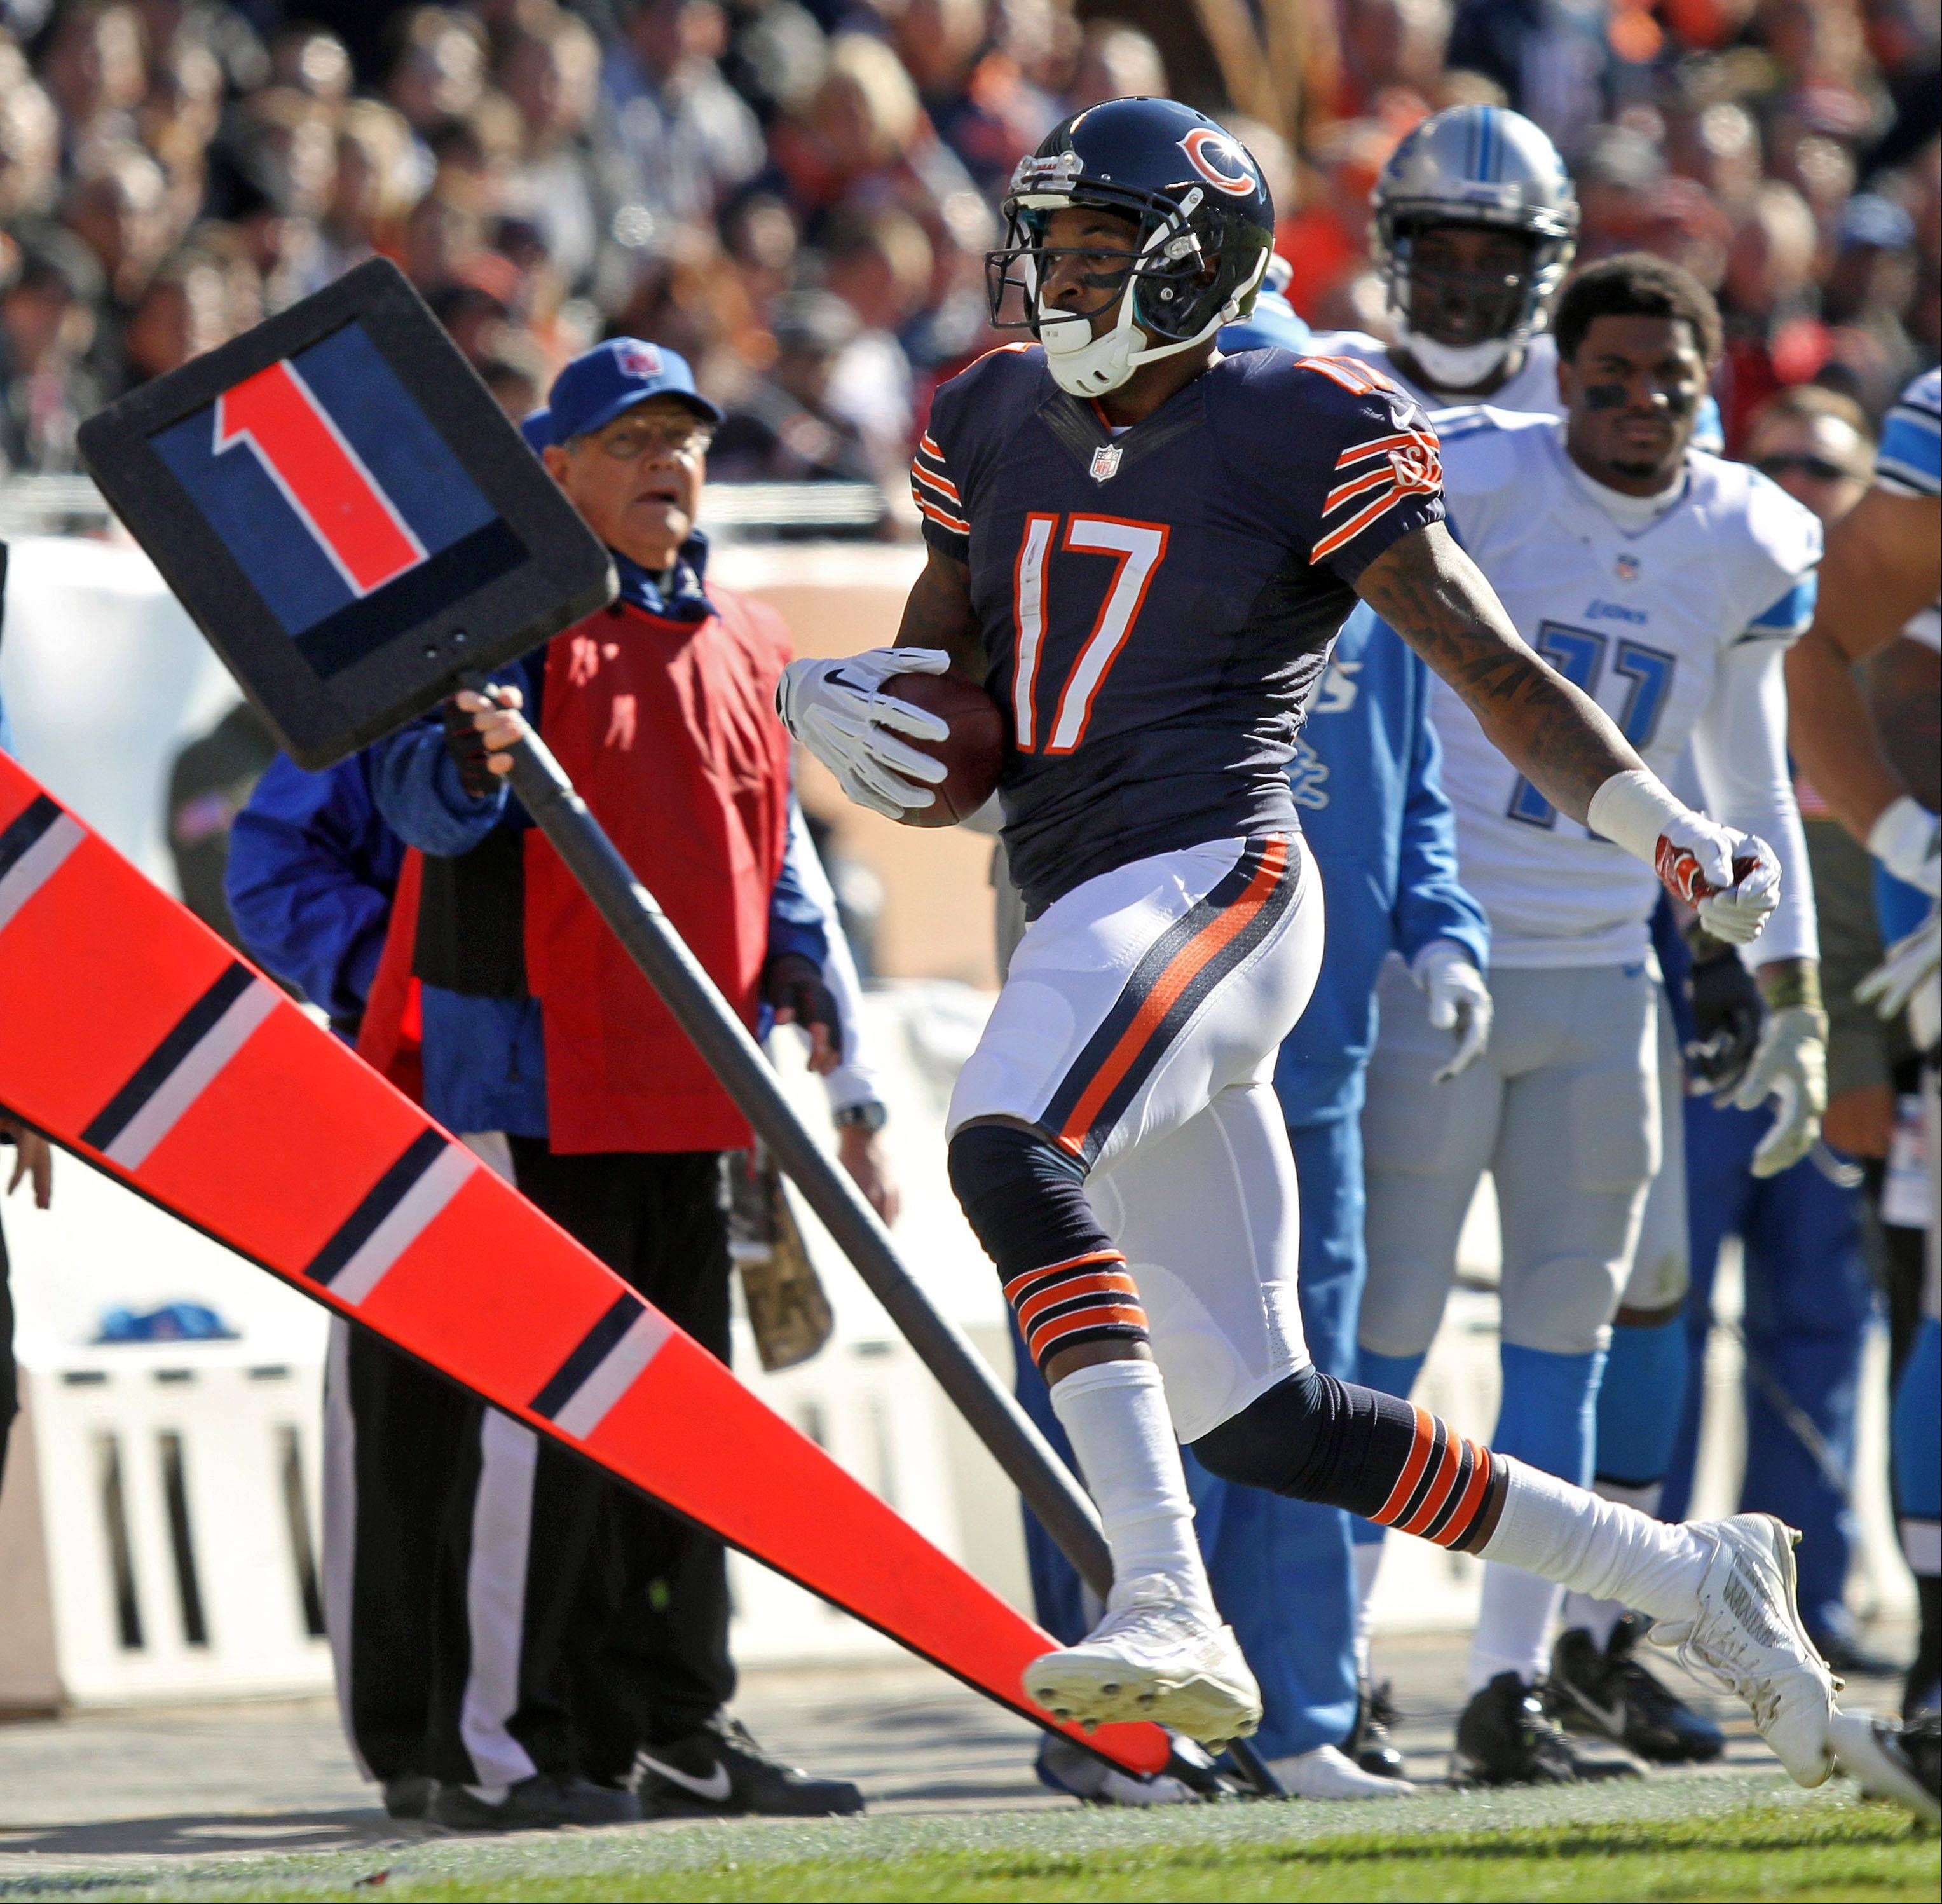 Schwind gets out of the way as Chicago Bears wide receiver Alshon Jeffery scampers out of bounds during the game.